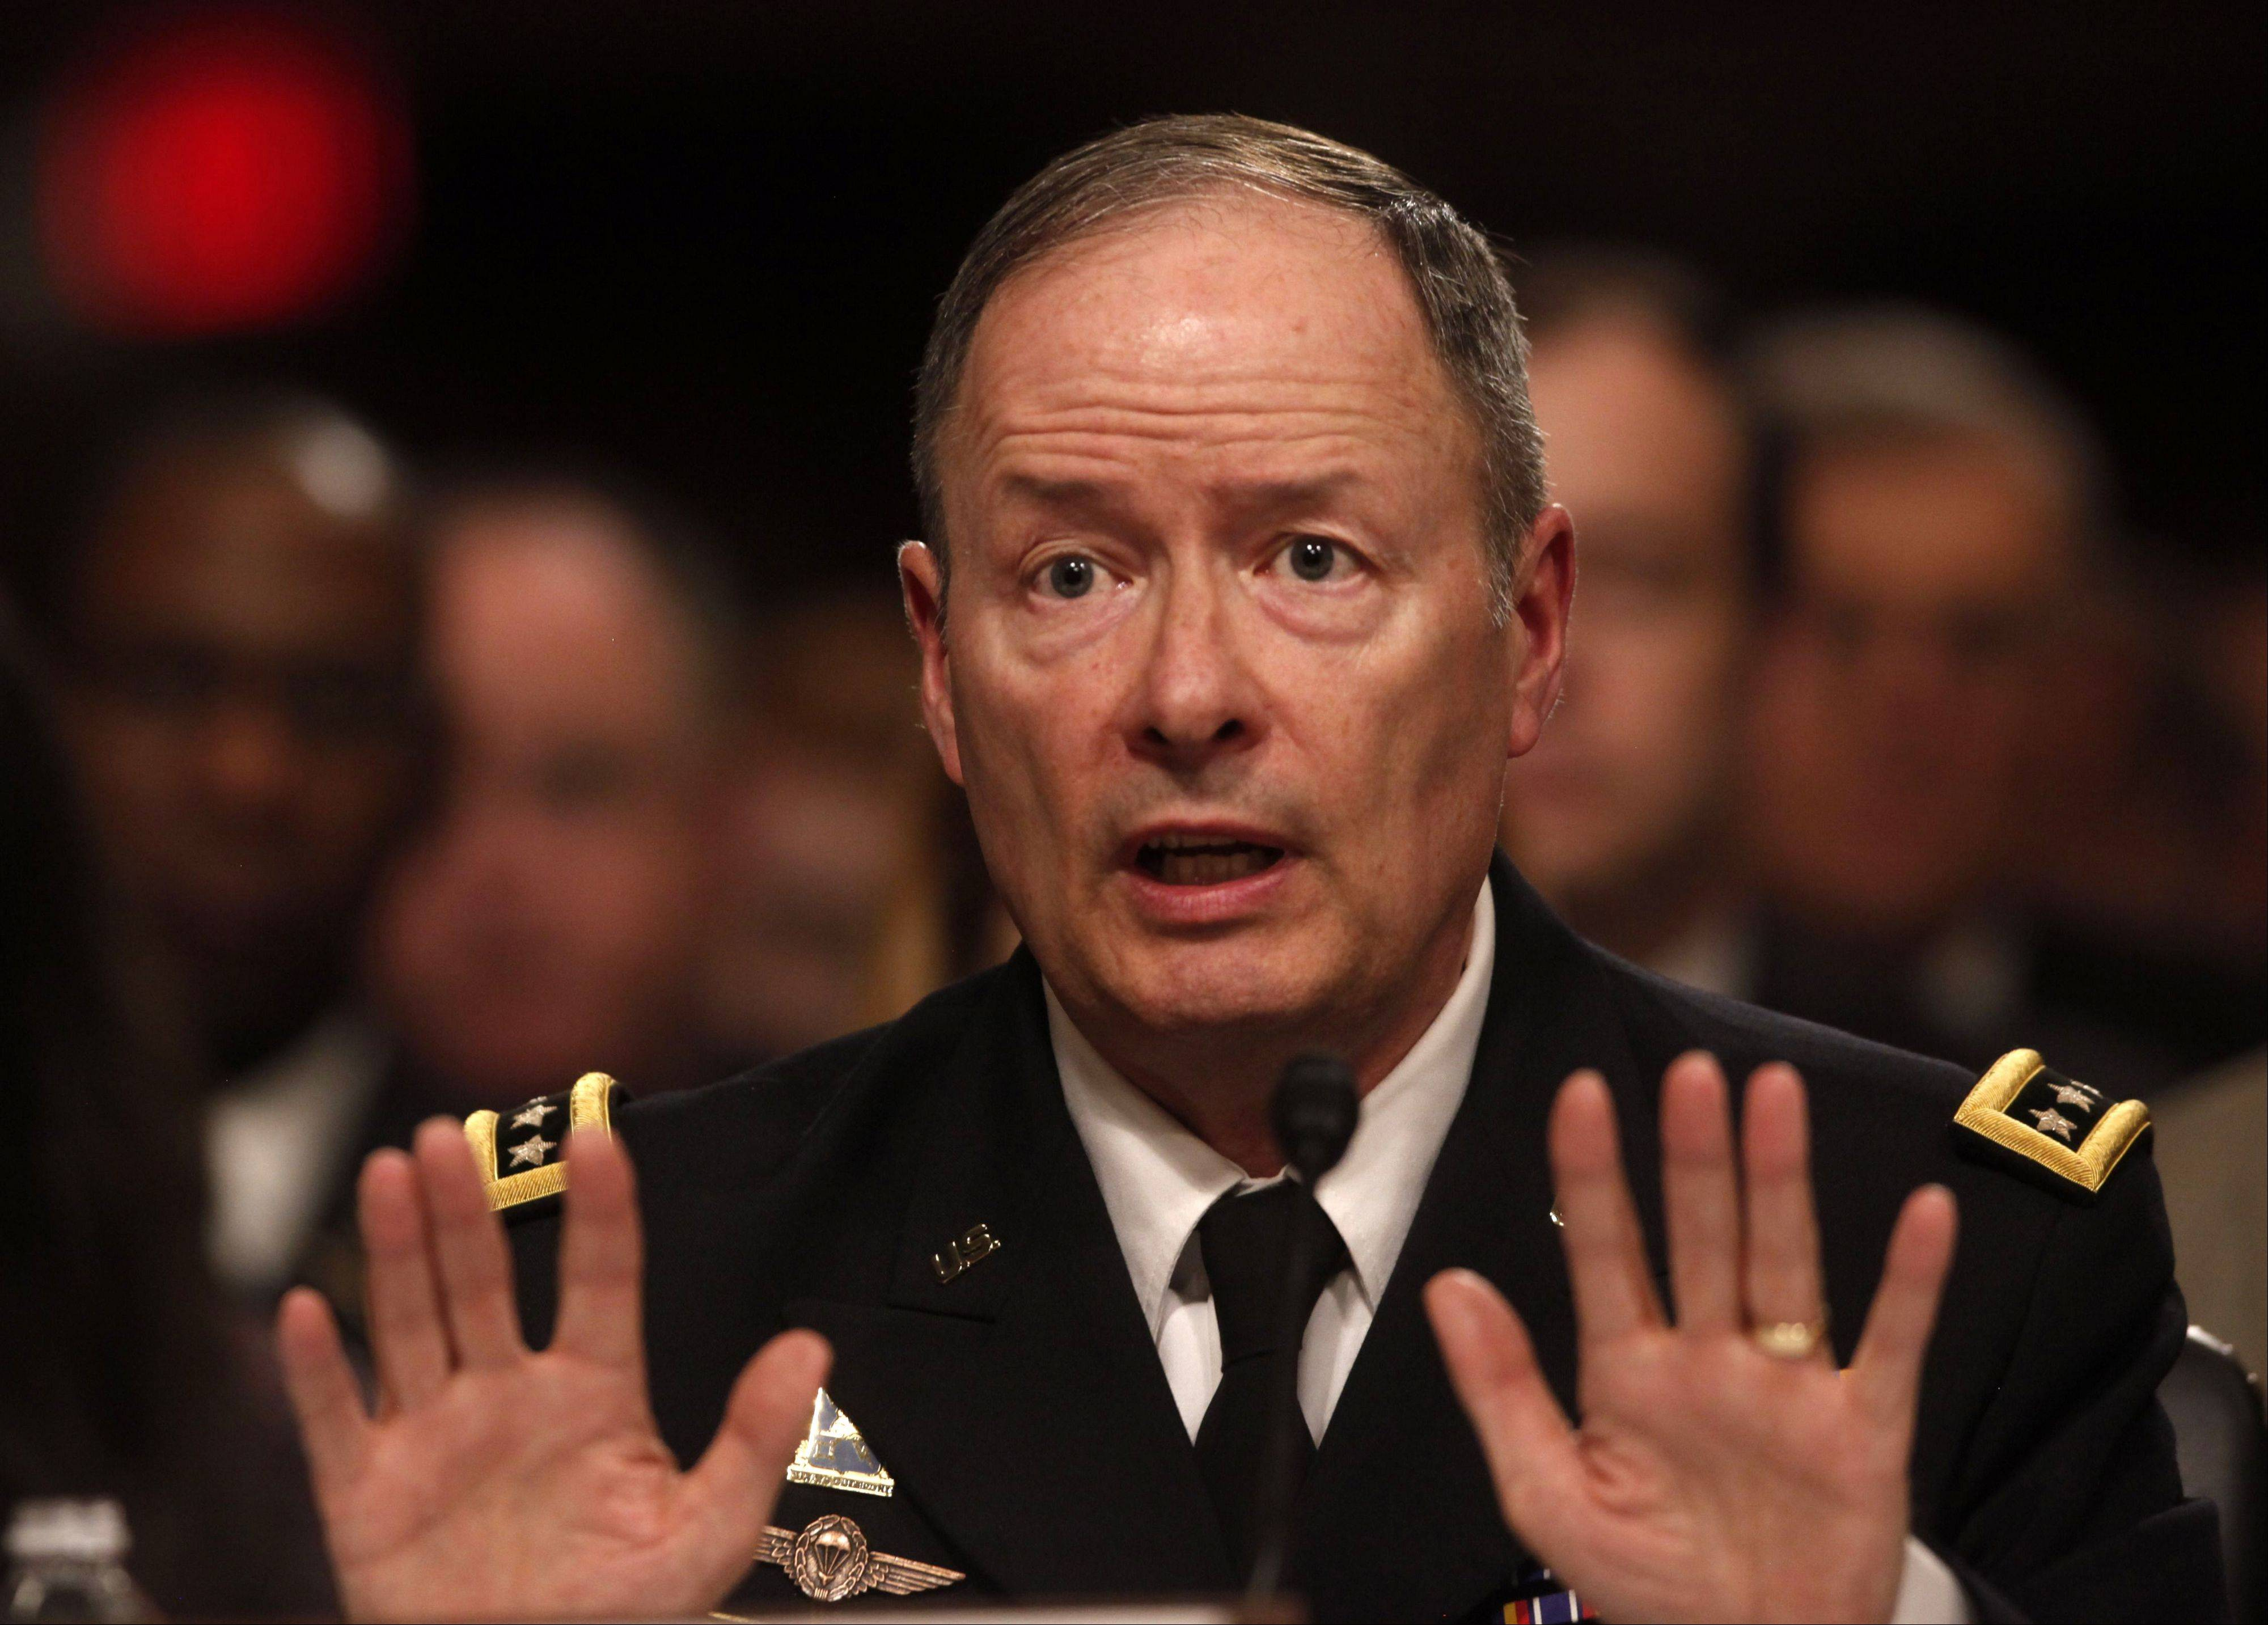 Gen. Keith Alexander testifies Wednesday before the Senate Appropriations Committee to explain NSA surveillance programs.